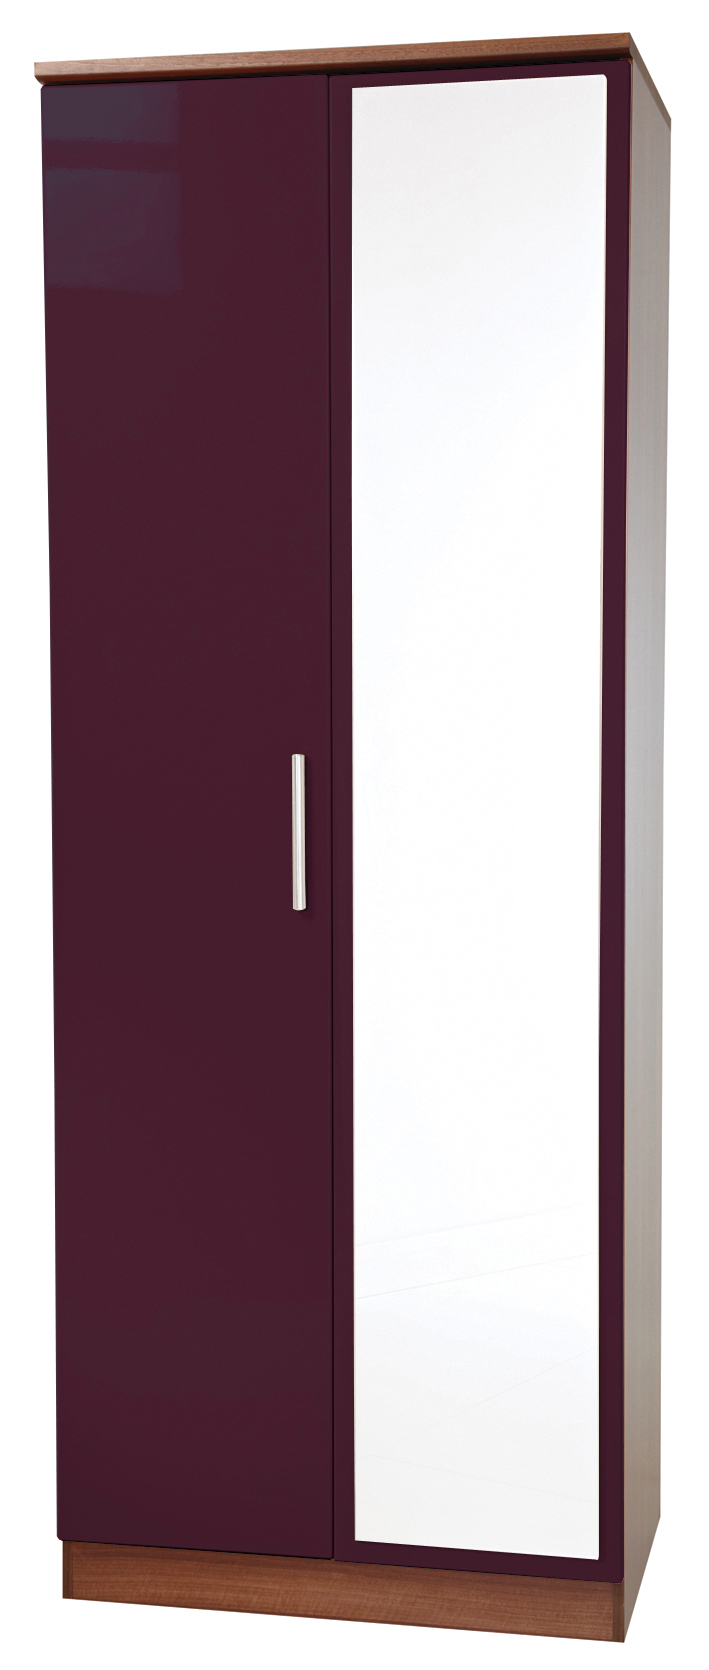 "KNIGHTSBRIDGE 30"" (HI/GLOSS) MIRROR WARDROBE - Click Image to Close"